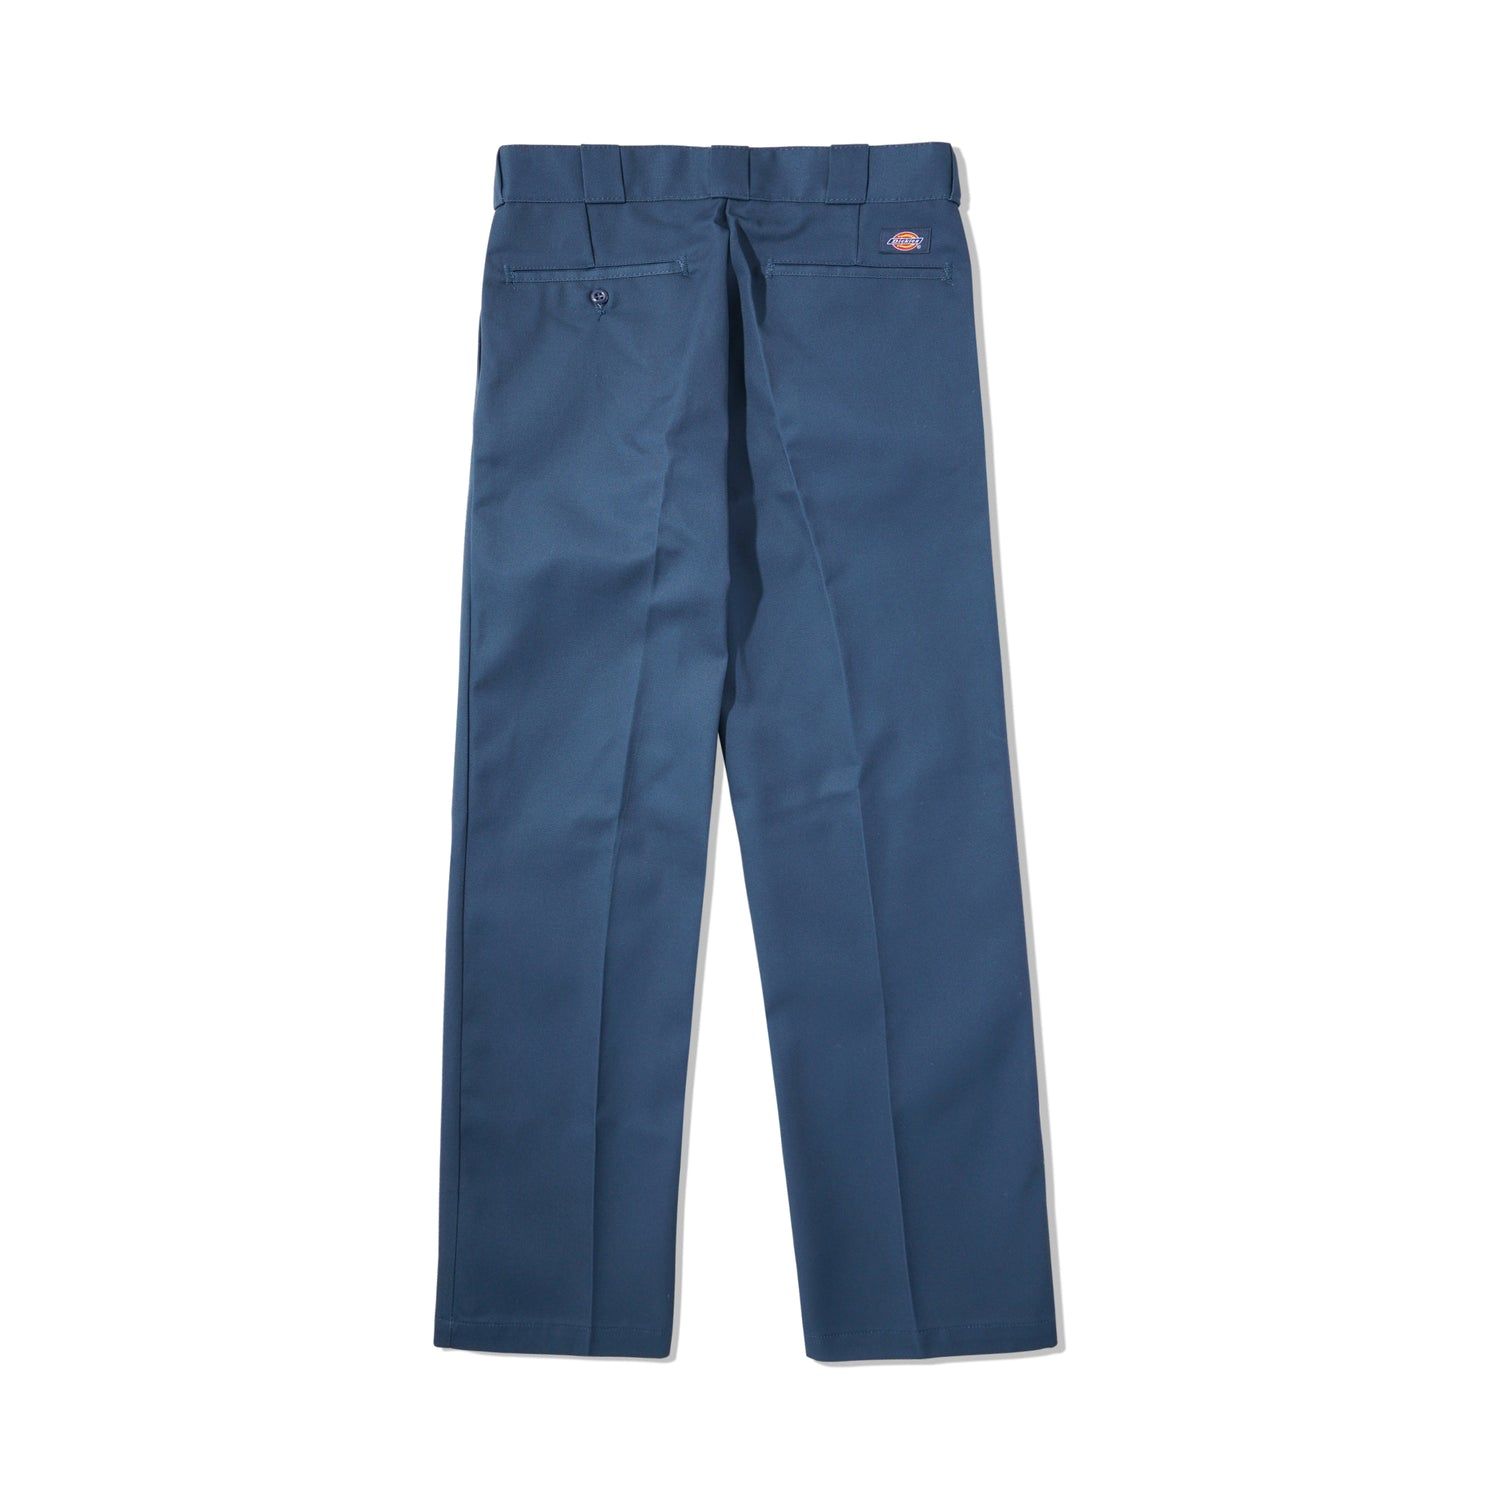 874 Work Pants, Airforce Blue